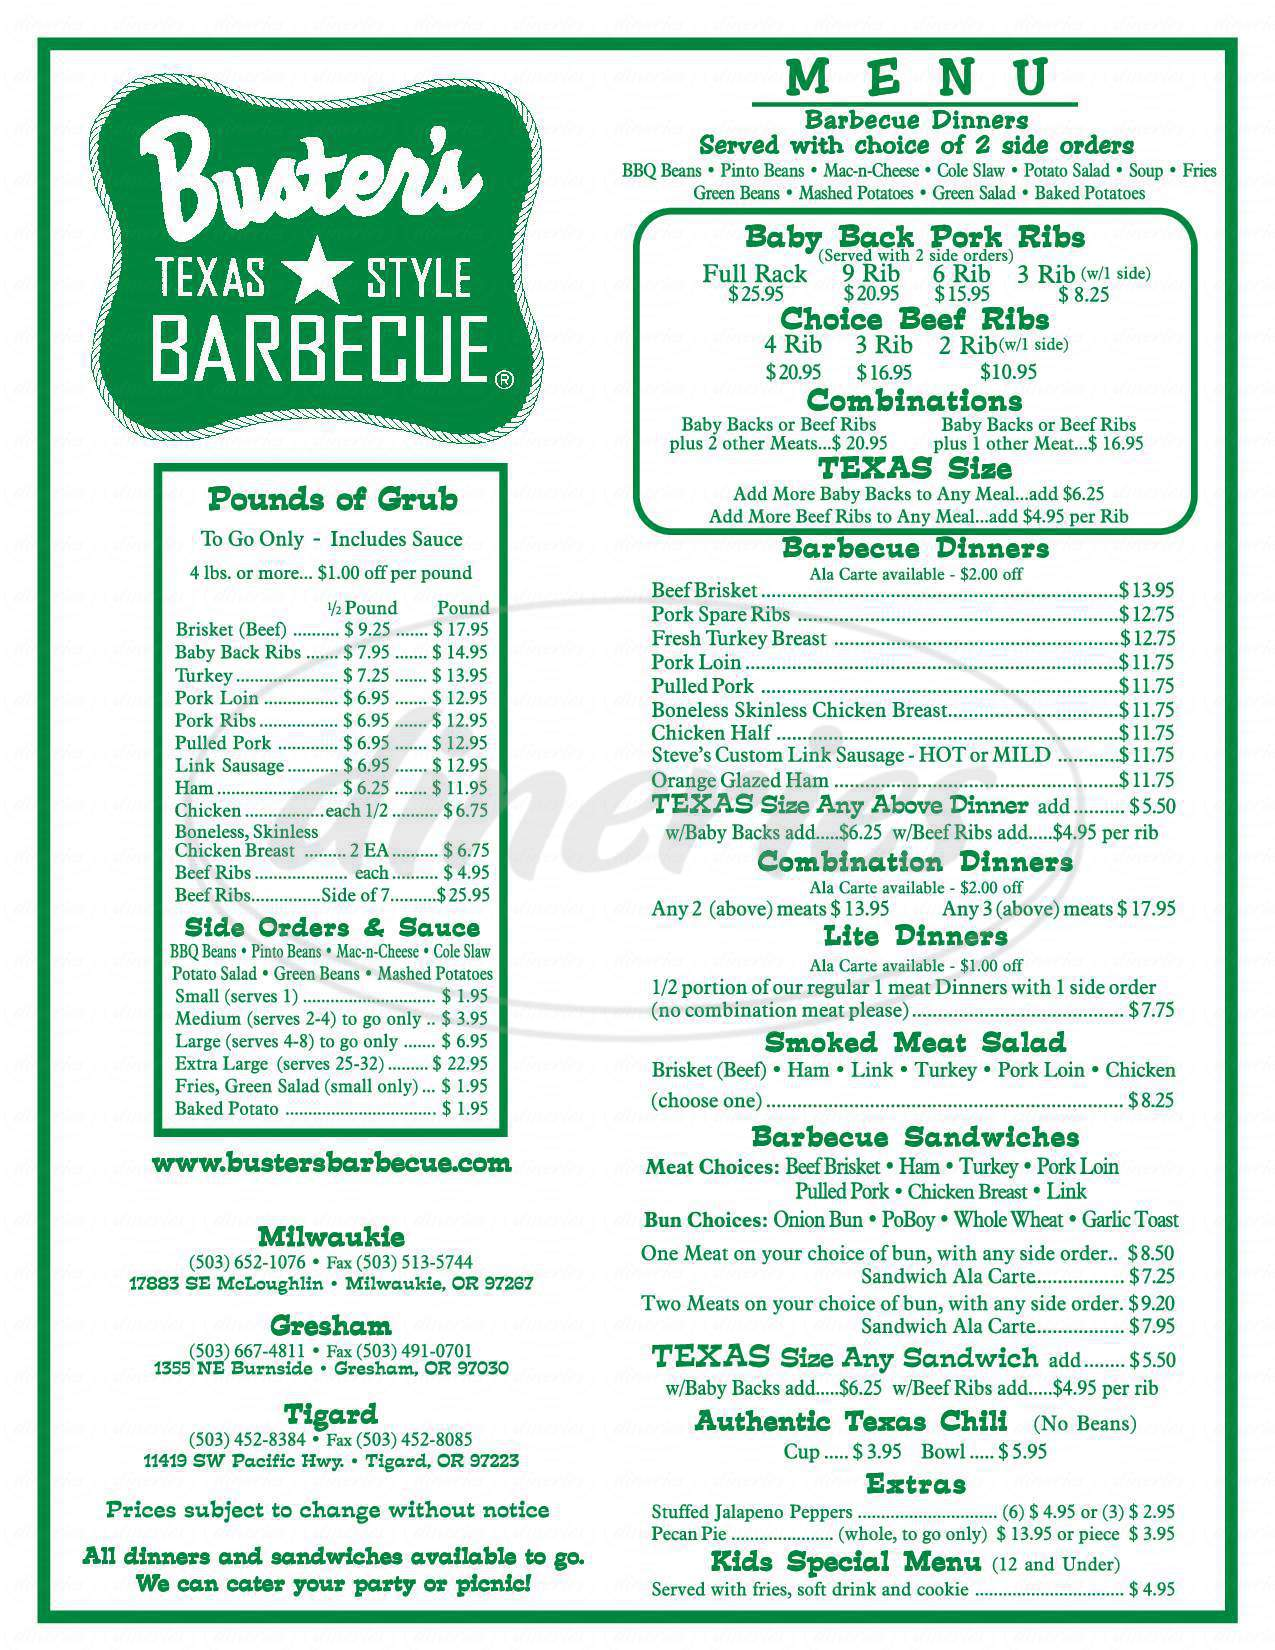 menu for Busters Texas Style Barbecue